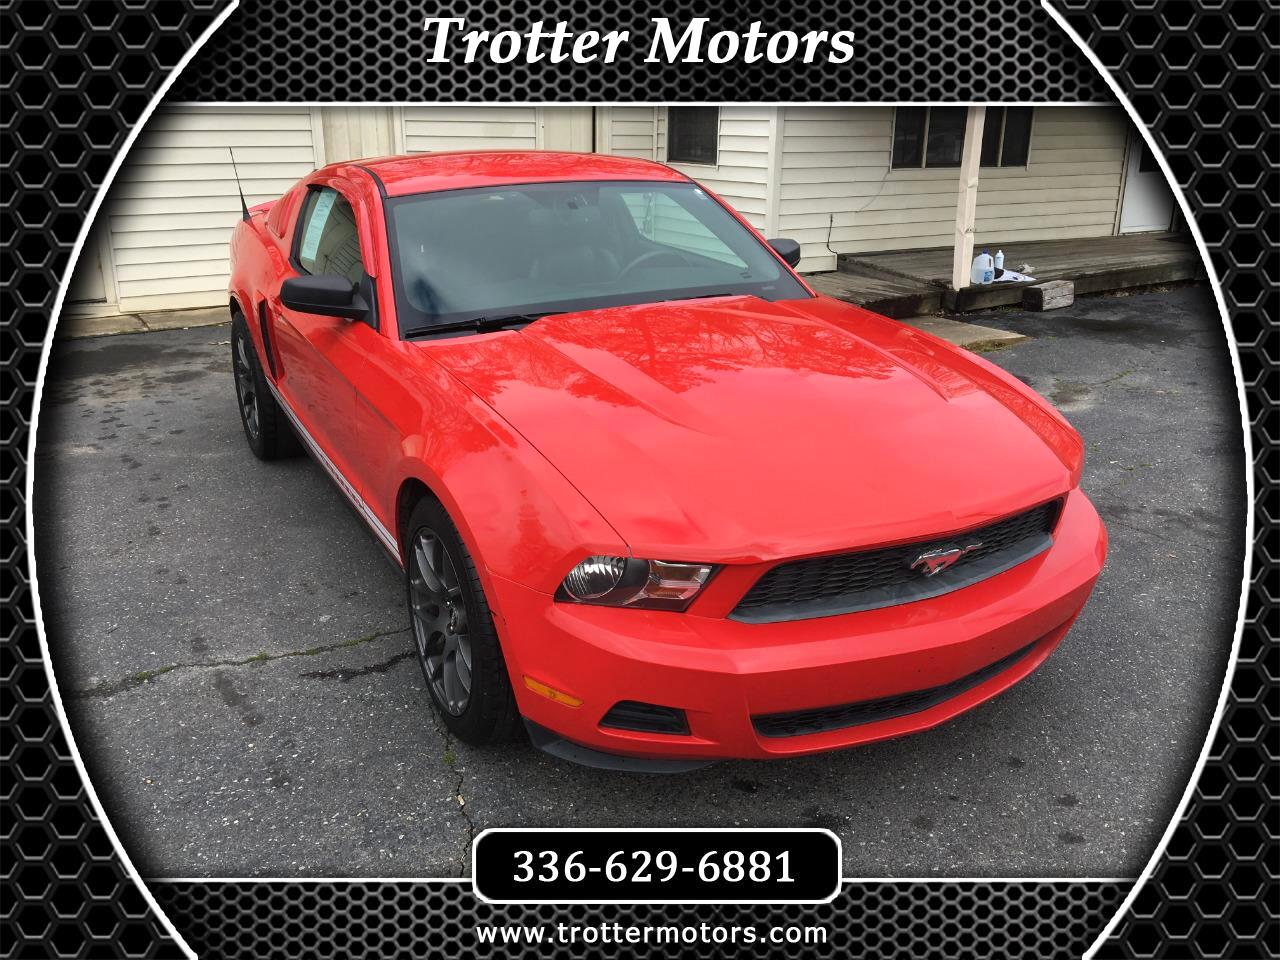 2010 Ford Mustang 2dr Cpe Deluxe